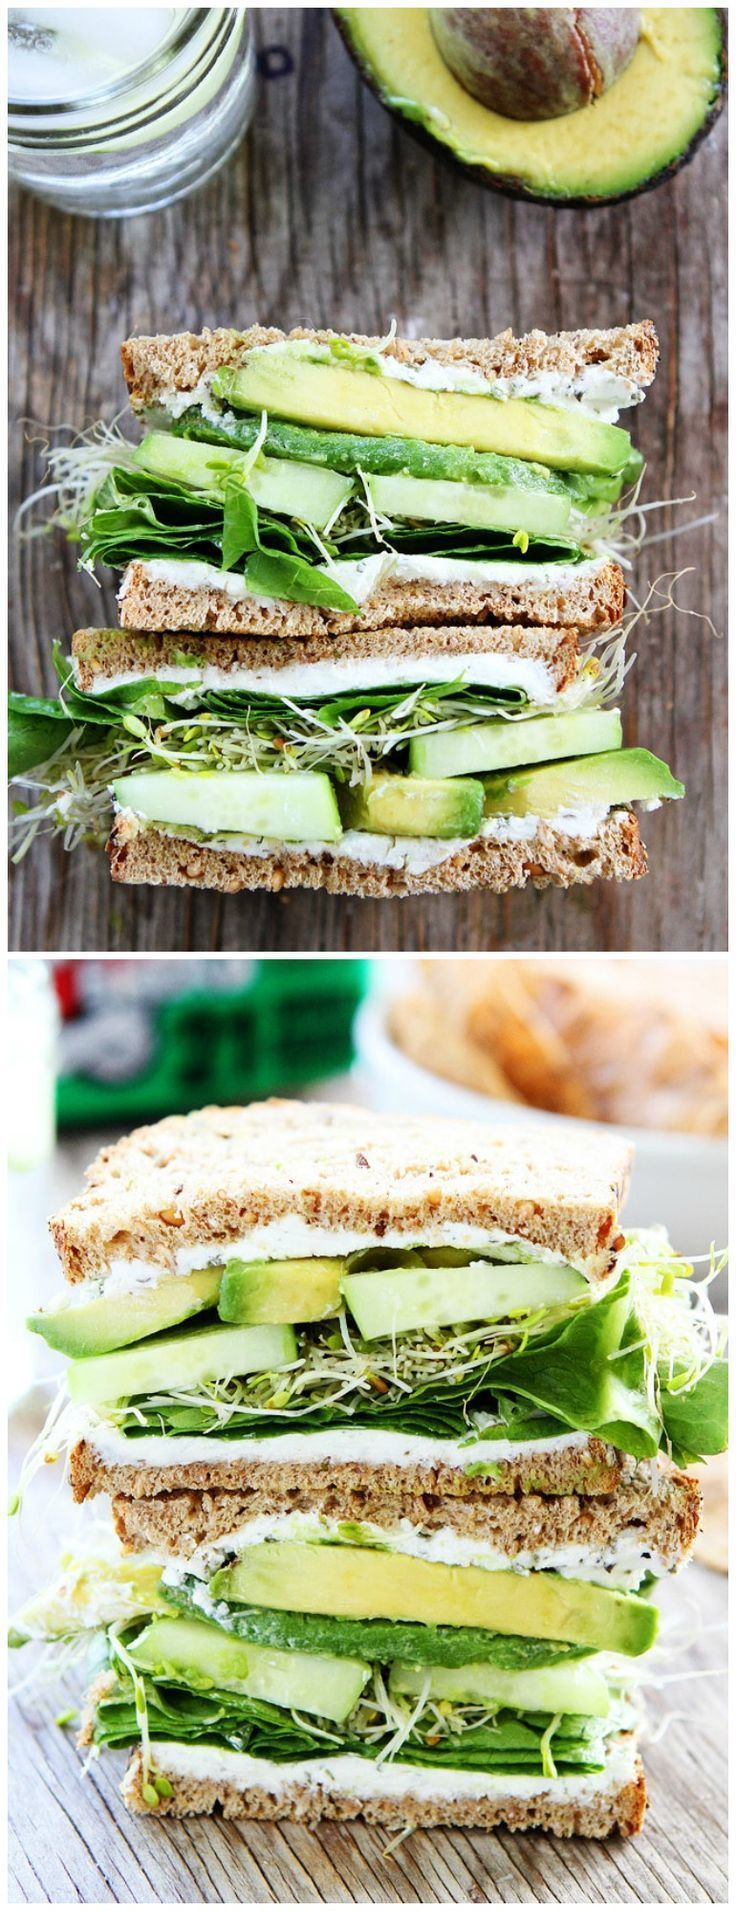 Cucumber and Avocado Sandwich Recipe on http://twopeasandtheirpod.com This fresh and simple sandwich is great for lunch or dinner.